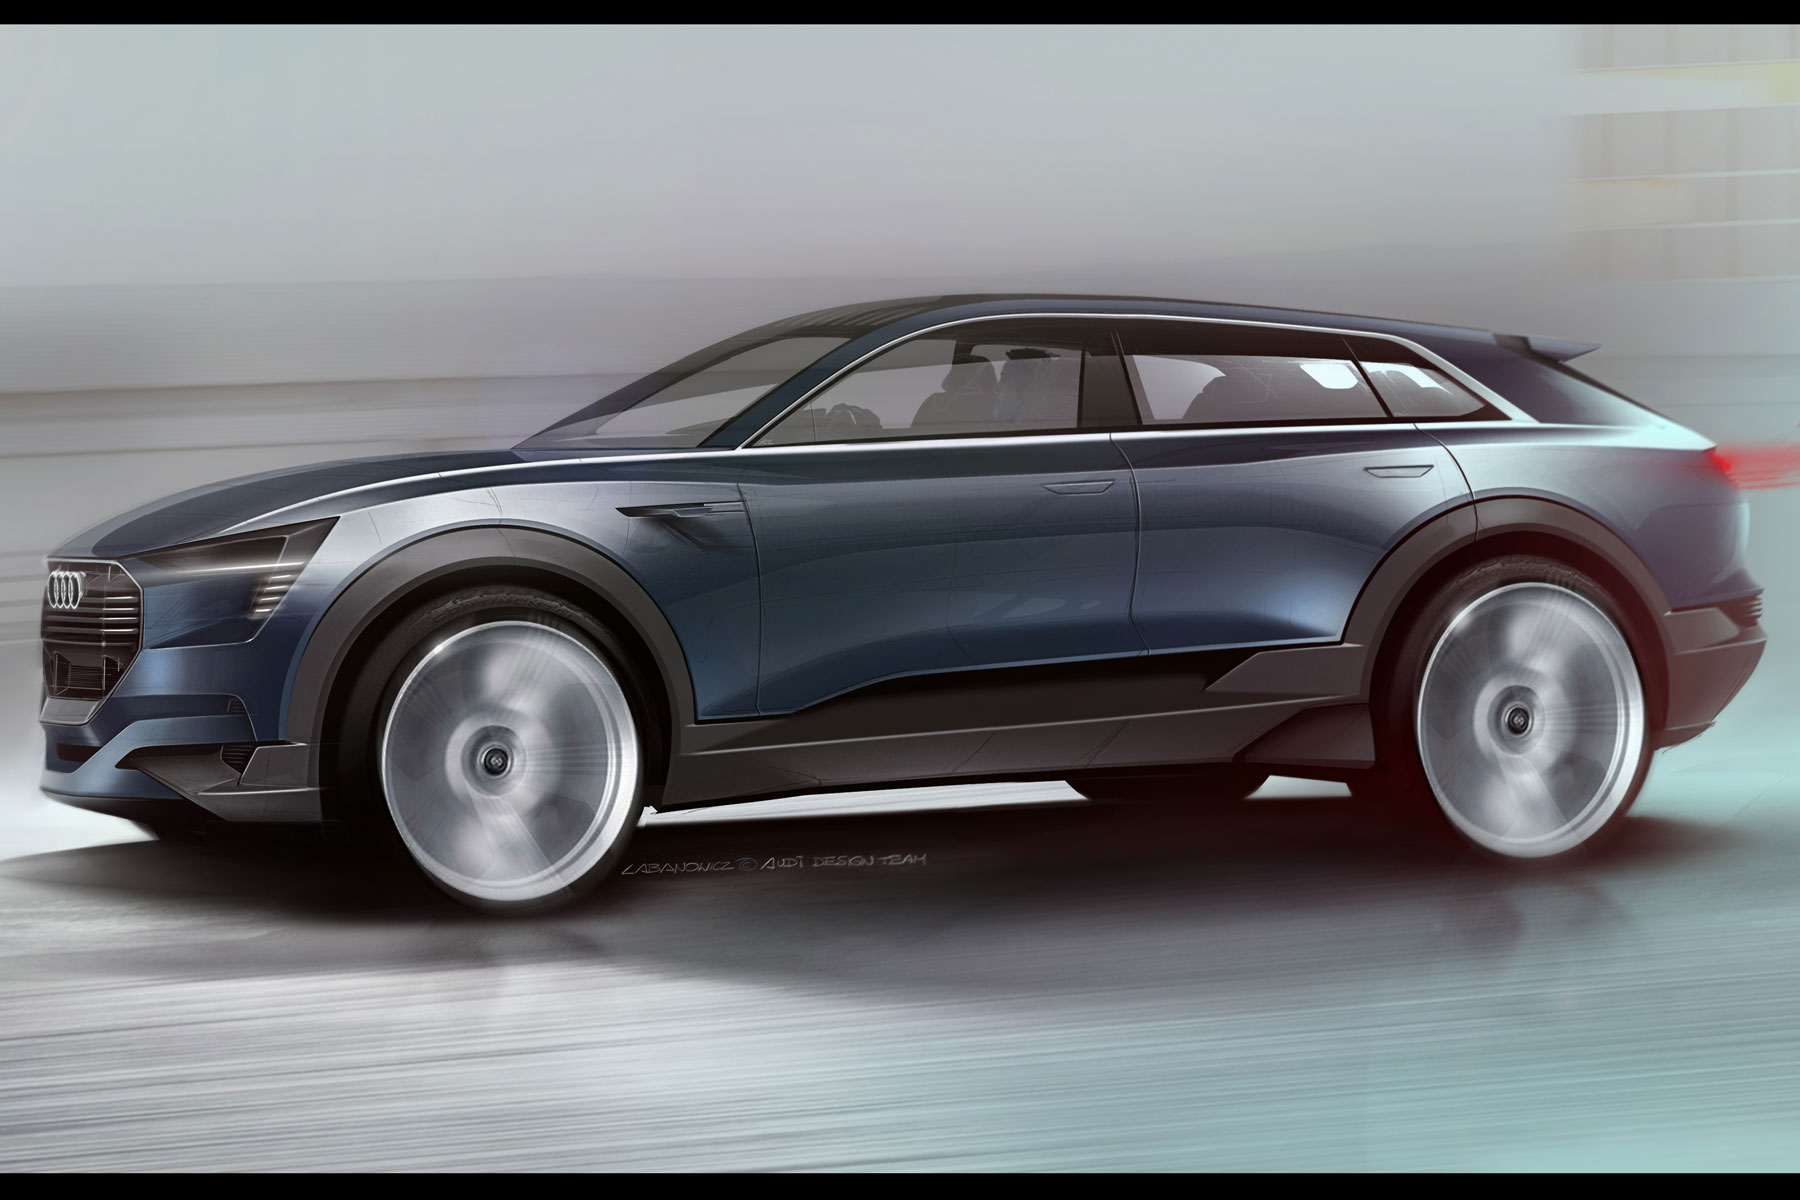 Audi reveals e-tron SUV concept with a range of 310 miles